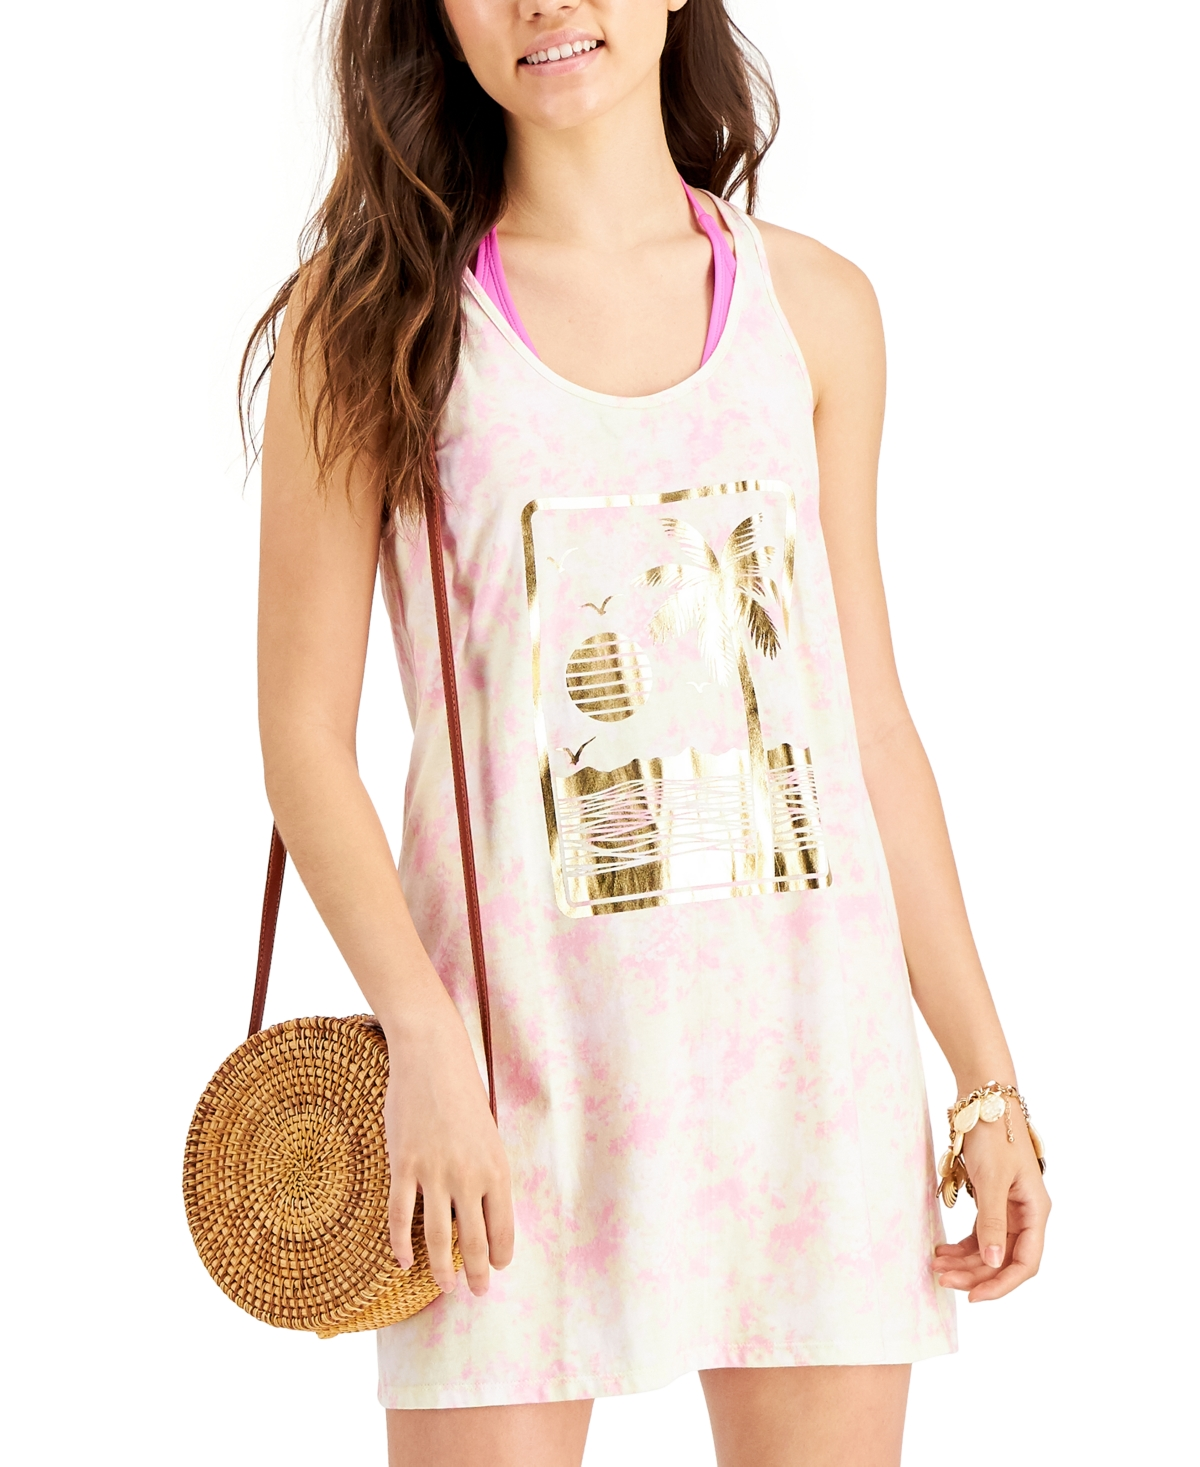 Miken Juniors' Tie-Dyed Graphic-Print Cotton Cover-Up Dress, Created for Macy's Women's Swimsuit